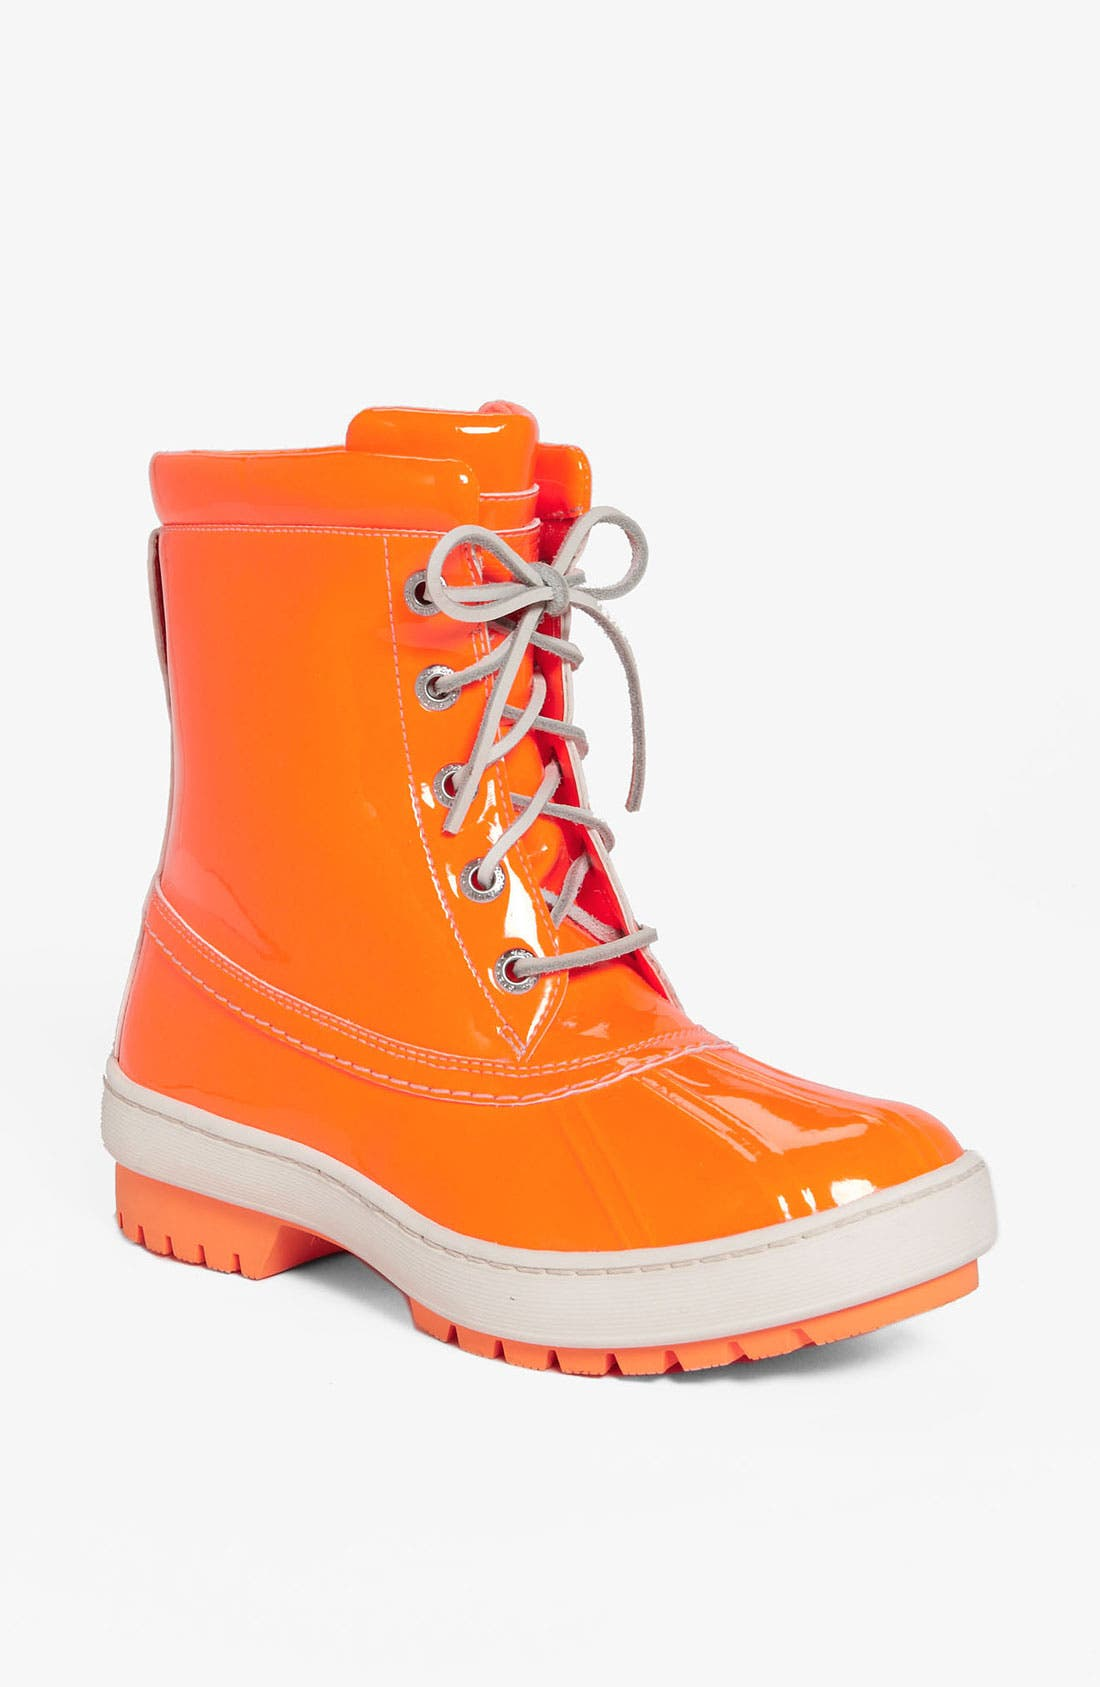 Alternate Image 1 Selected - Sperry Top-Sider® for Jeffrey 'Zermatt' Boot (Online Only)